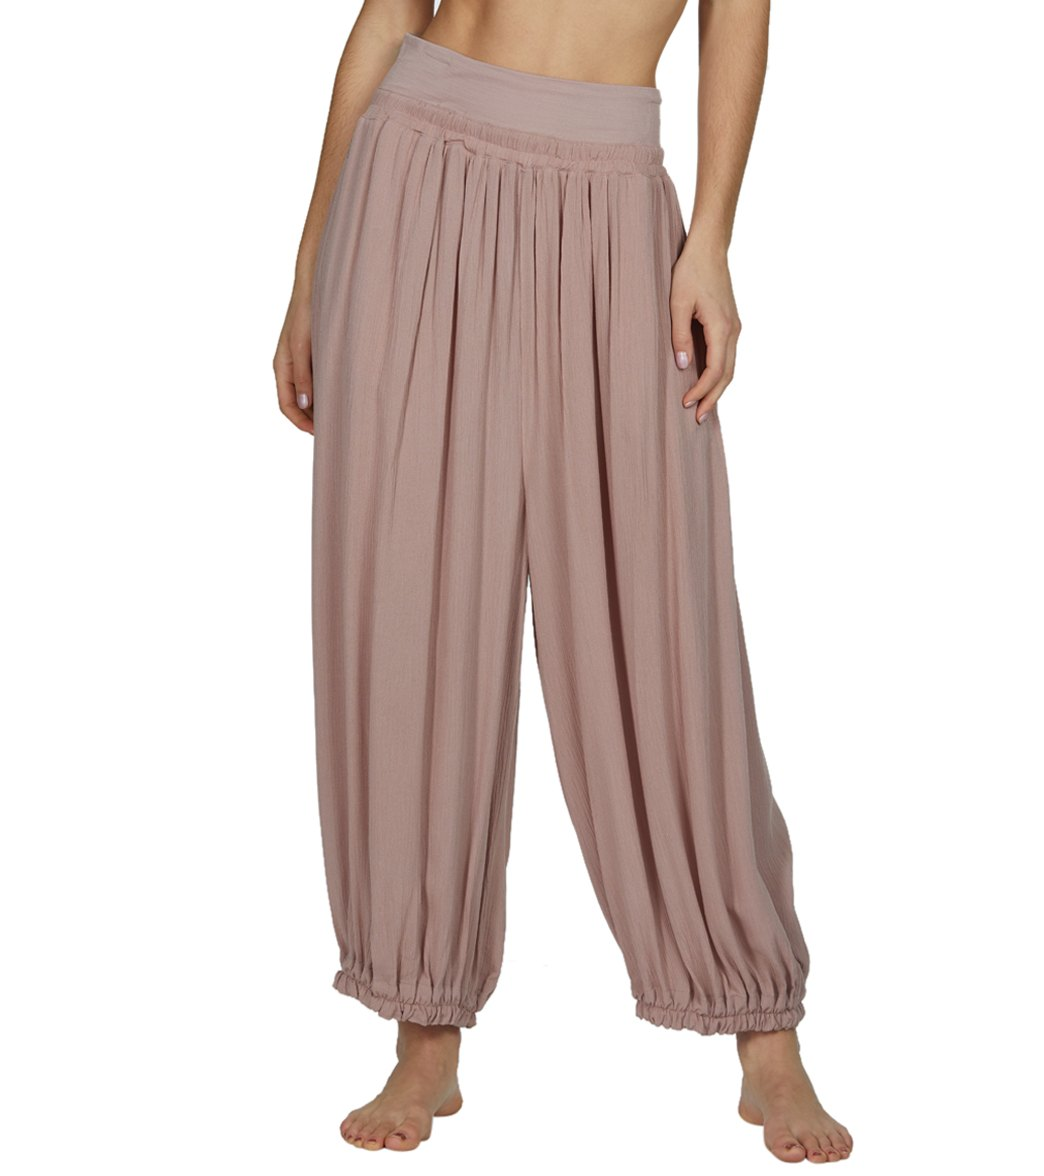 Free People Emery Pants at YogaOutlet.com - Free Shipping da07d0d64